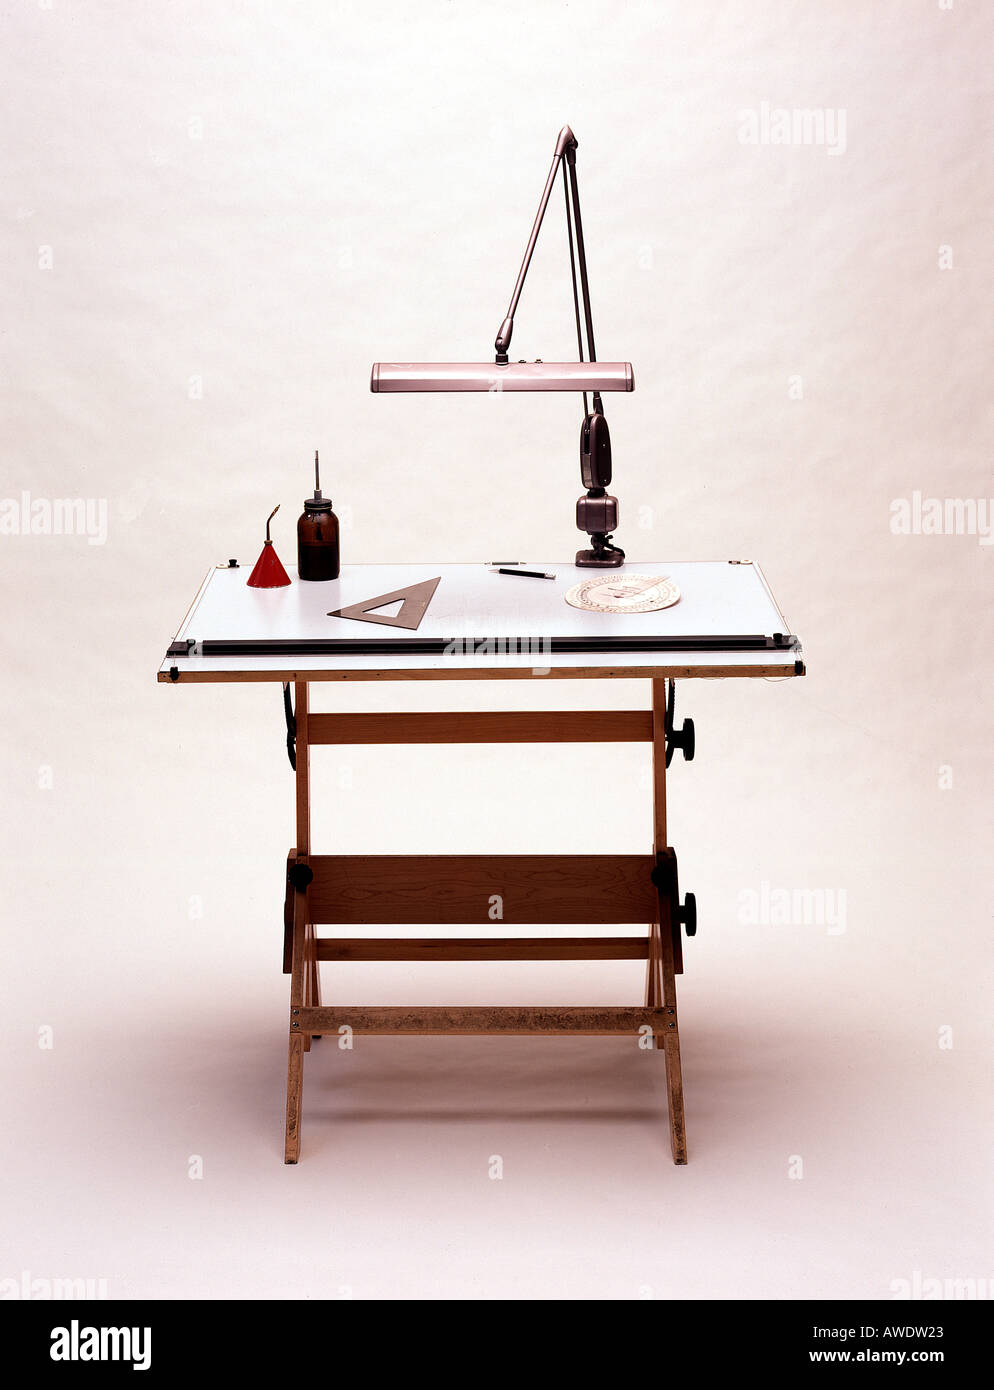 drafting draftsman architect designer engineer work table l& tools triangle graphic arts desk l& & drafting draftsman architect designer engineer work table lamp tools ...